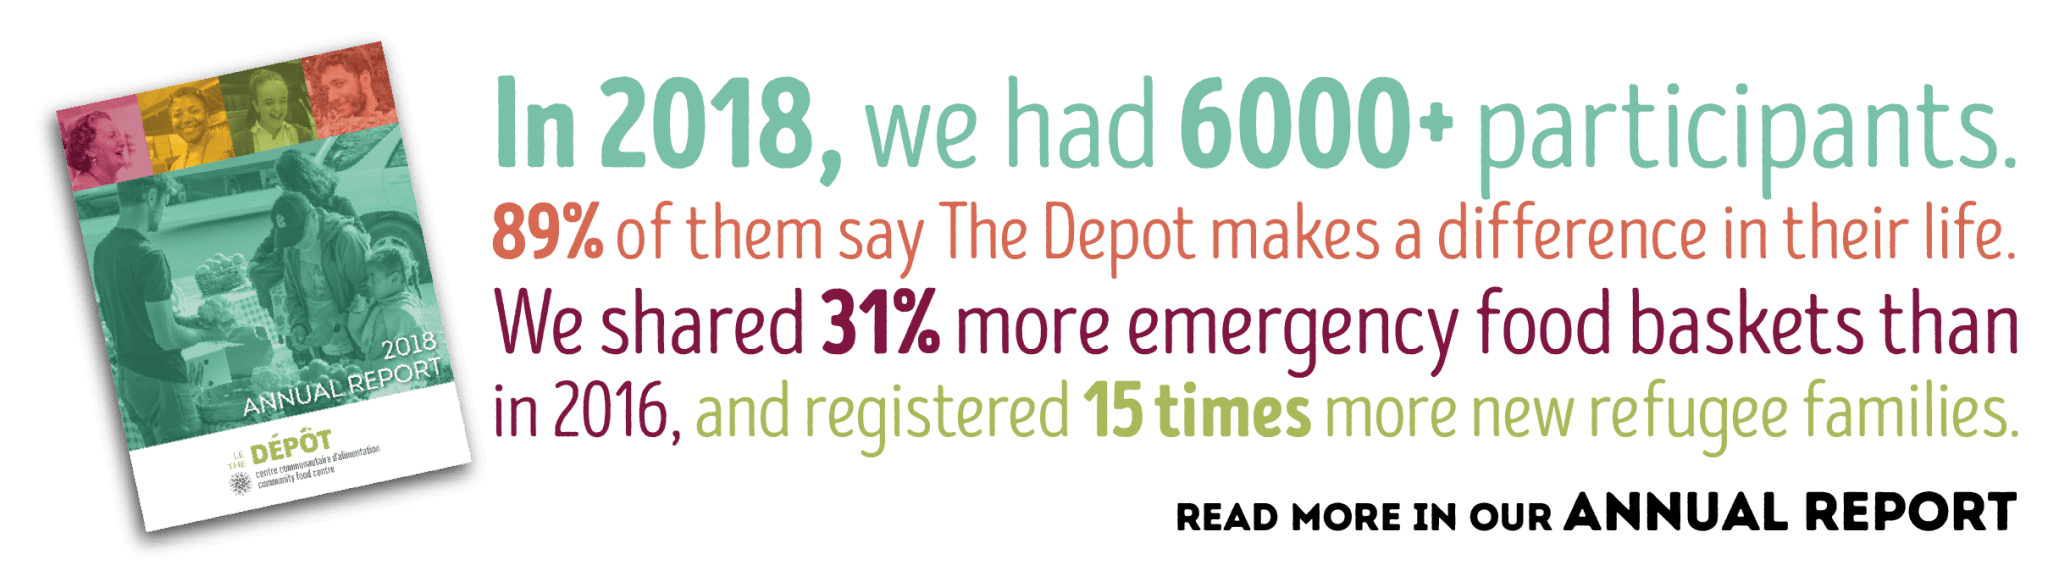 In 2018, we had 6000+ participants. 89 percent of them say The Depot makes a difference in their life. We shared 31 percent more emergency food baskets than in 2016, and registered 15 times more new refugee families. Read more in our annual report.